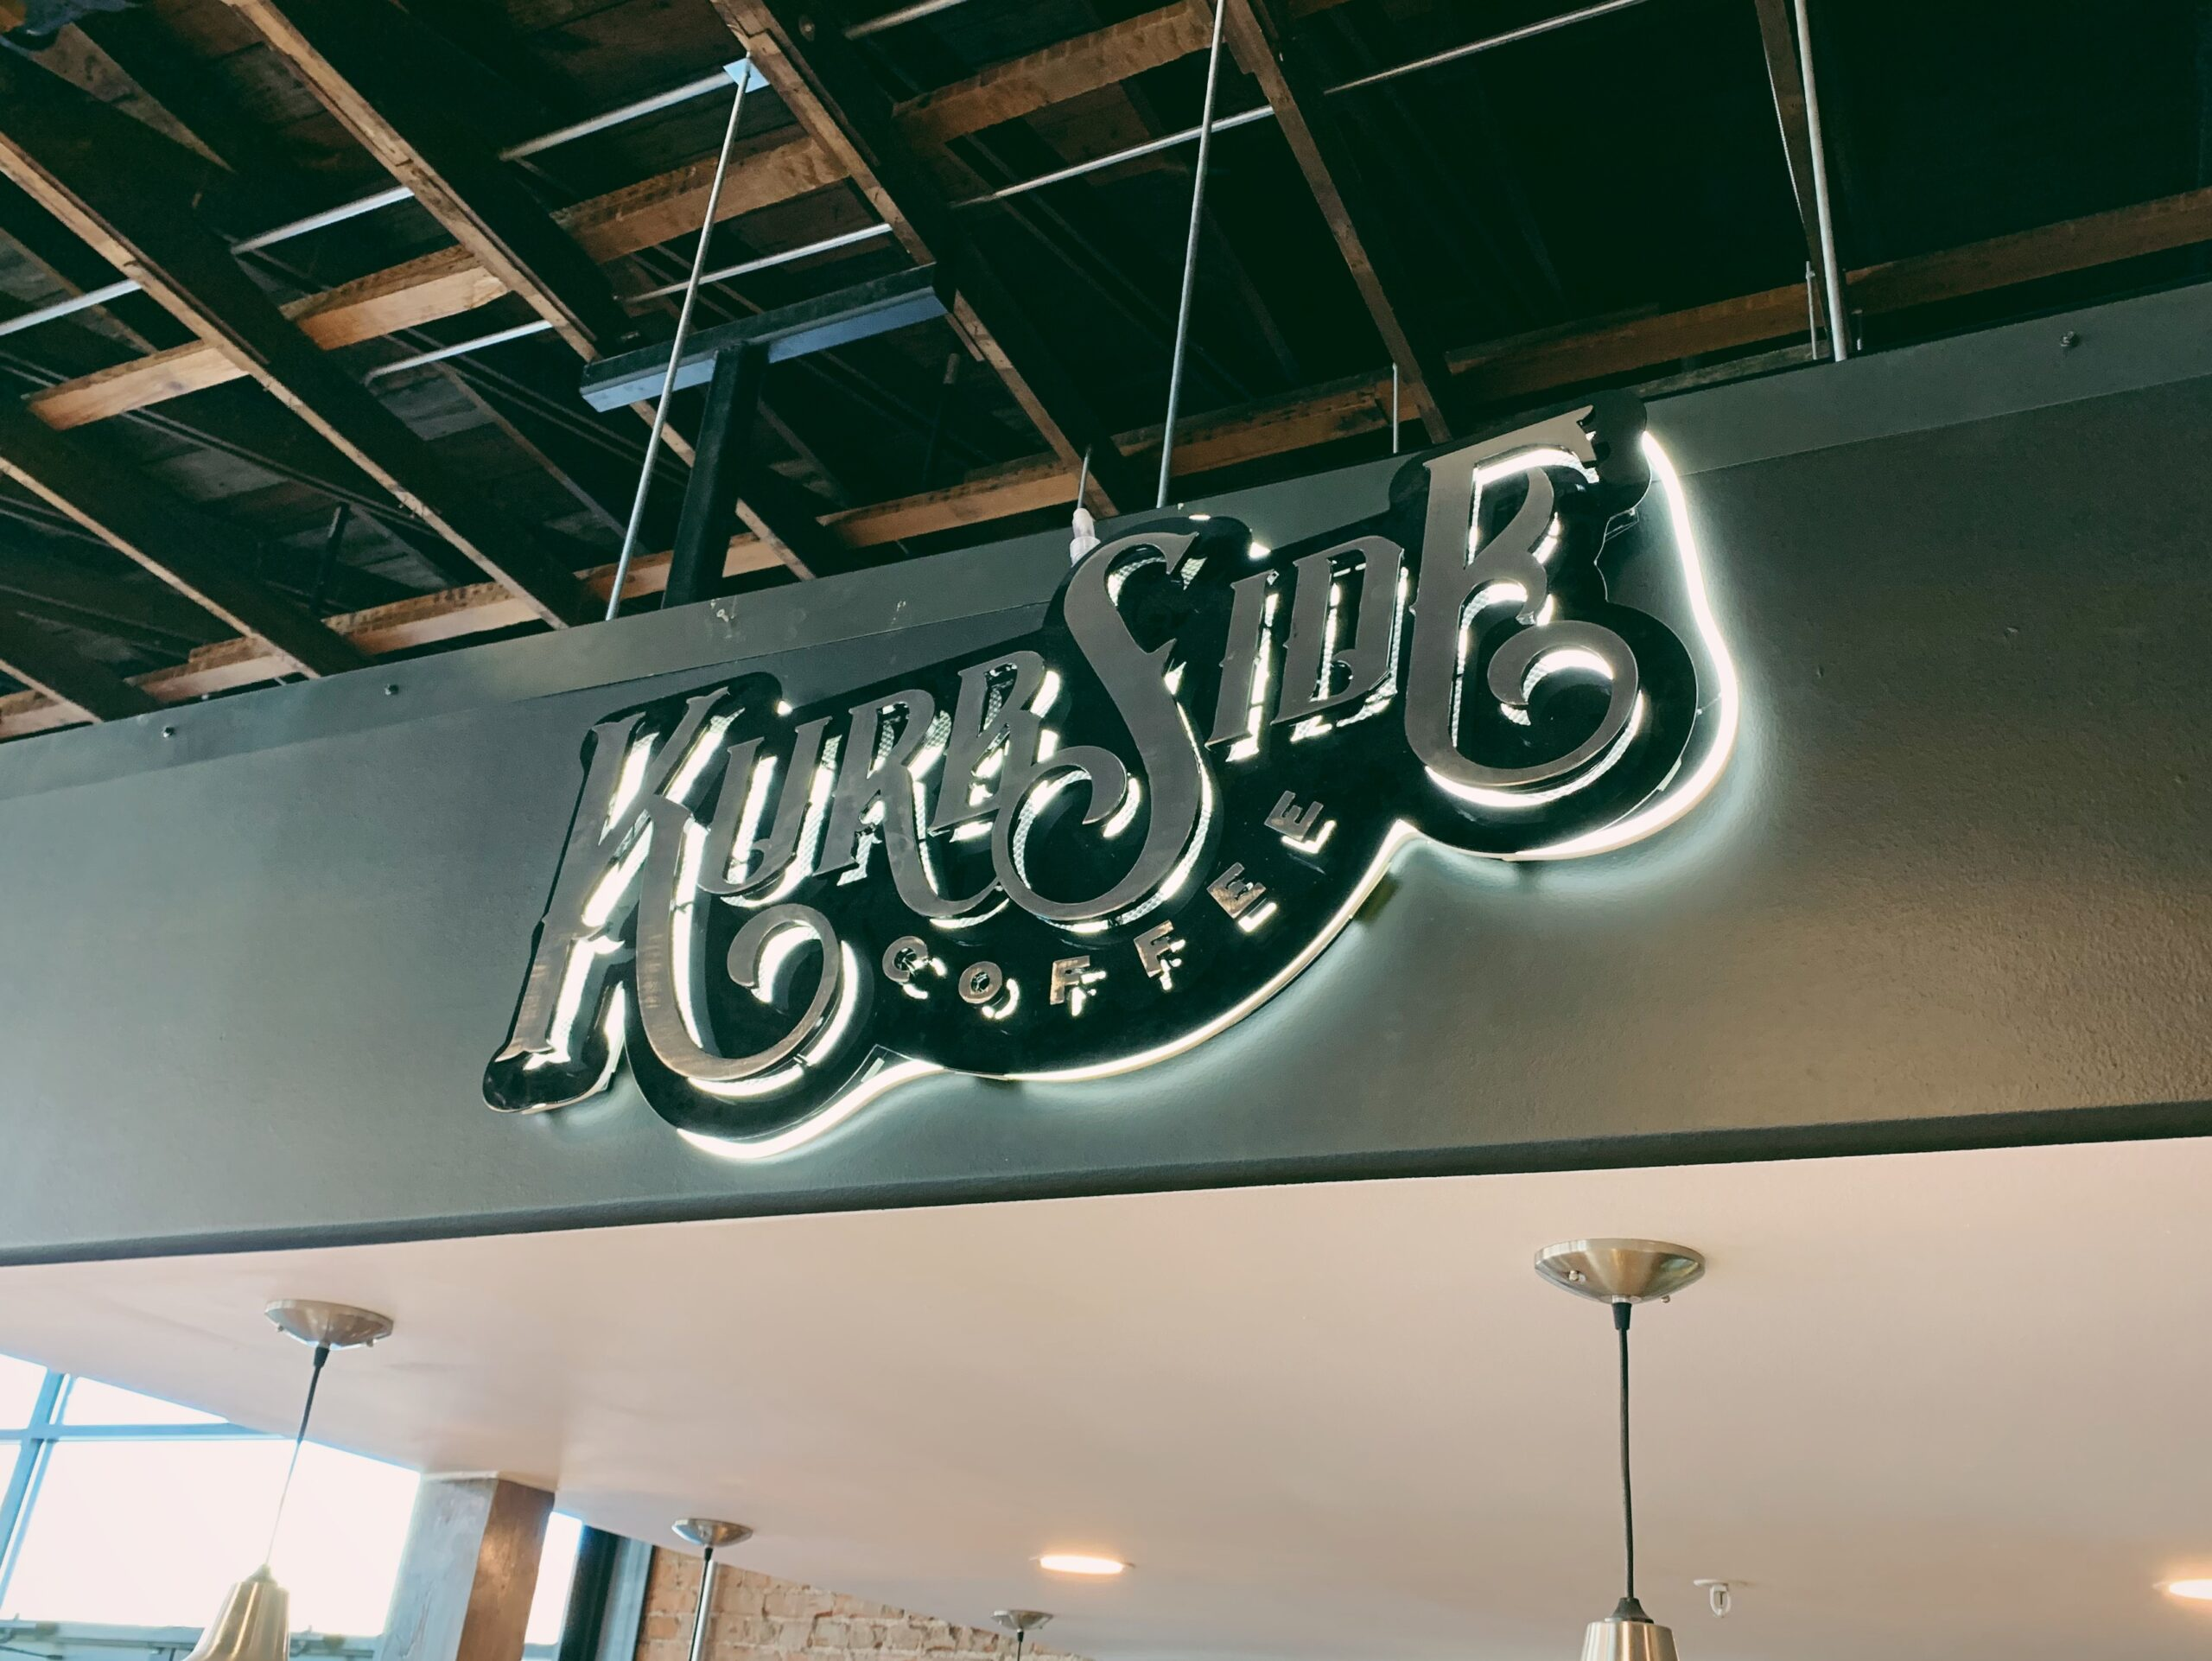 Kurbside Coffee - Union Hall